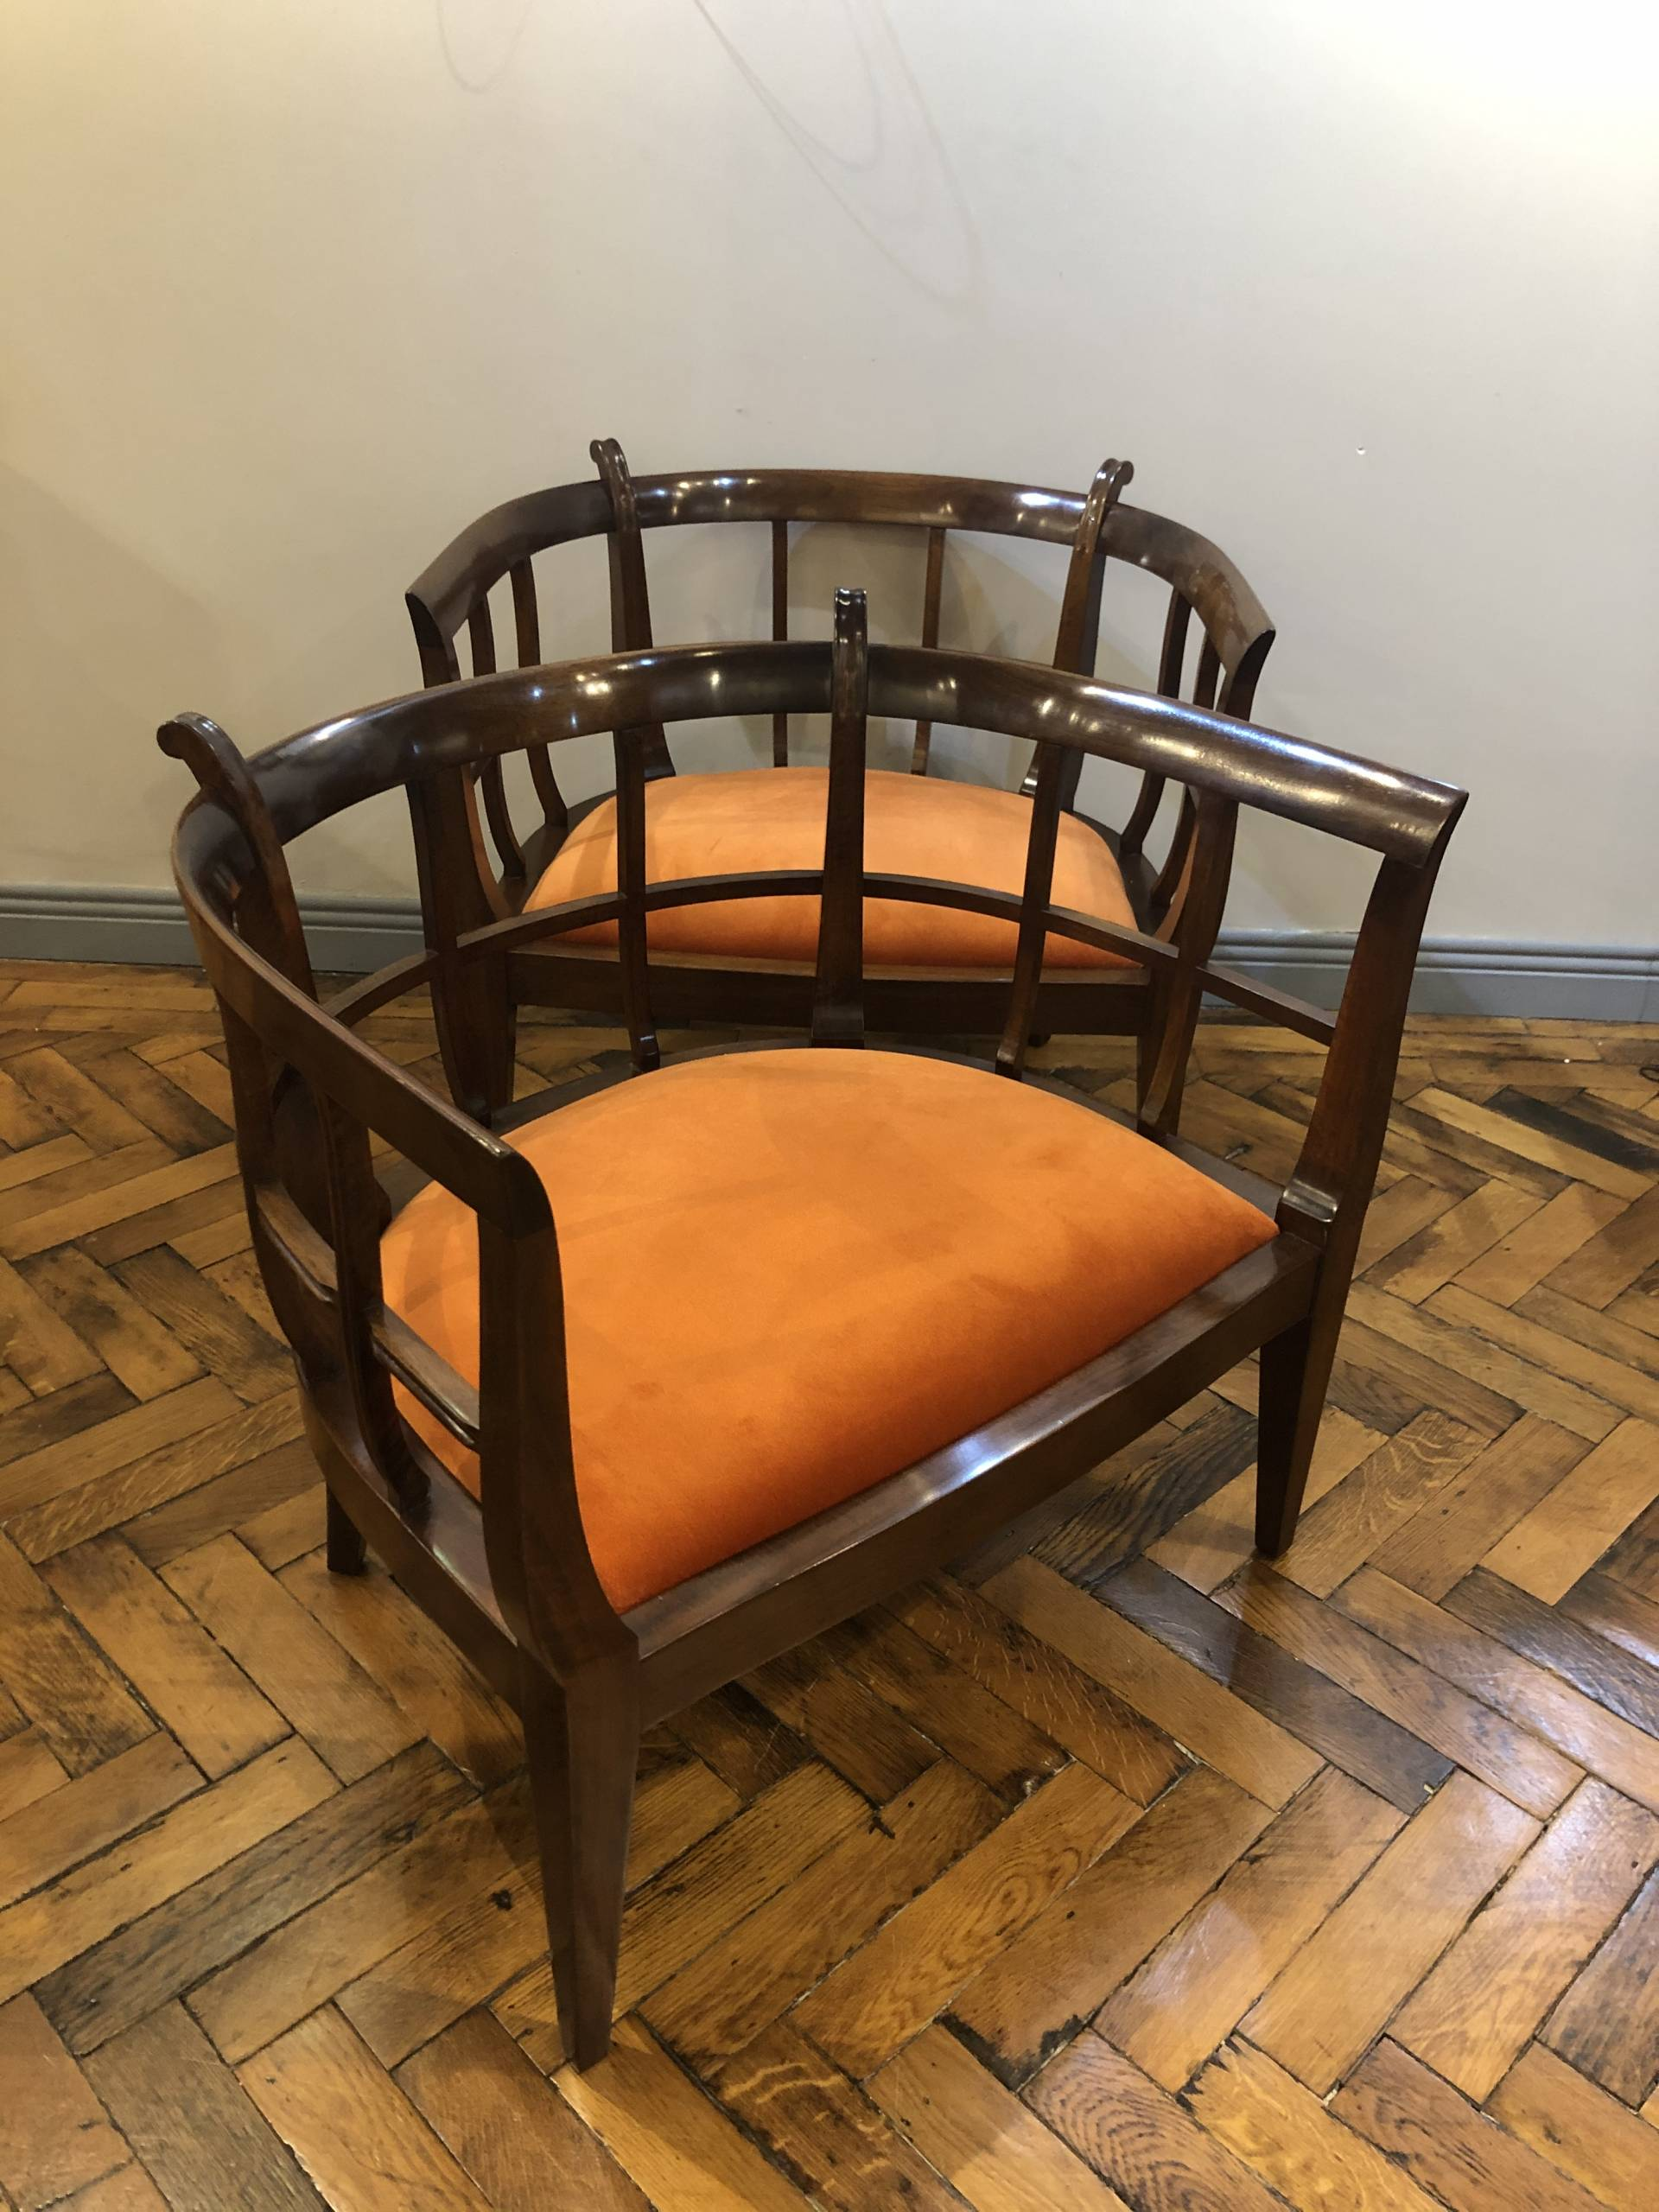 AN EXCEPTIONAL PAIR OF ARTS & CRAFTS CHAIRS